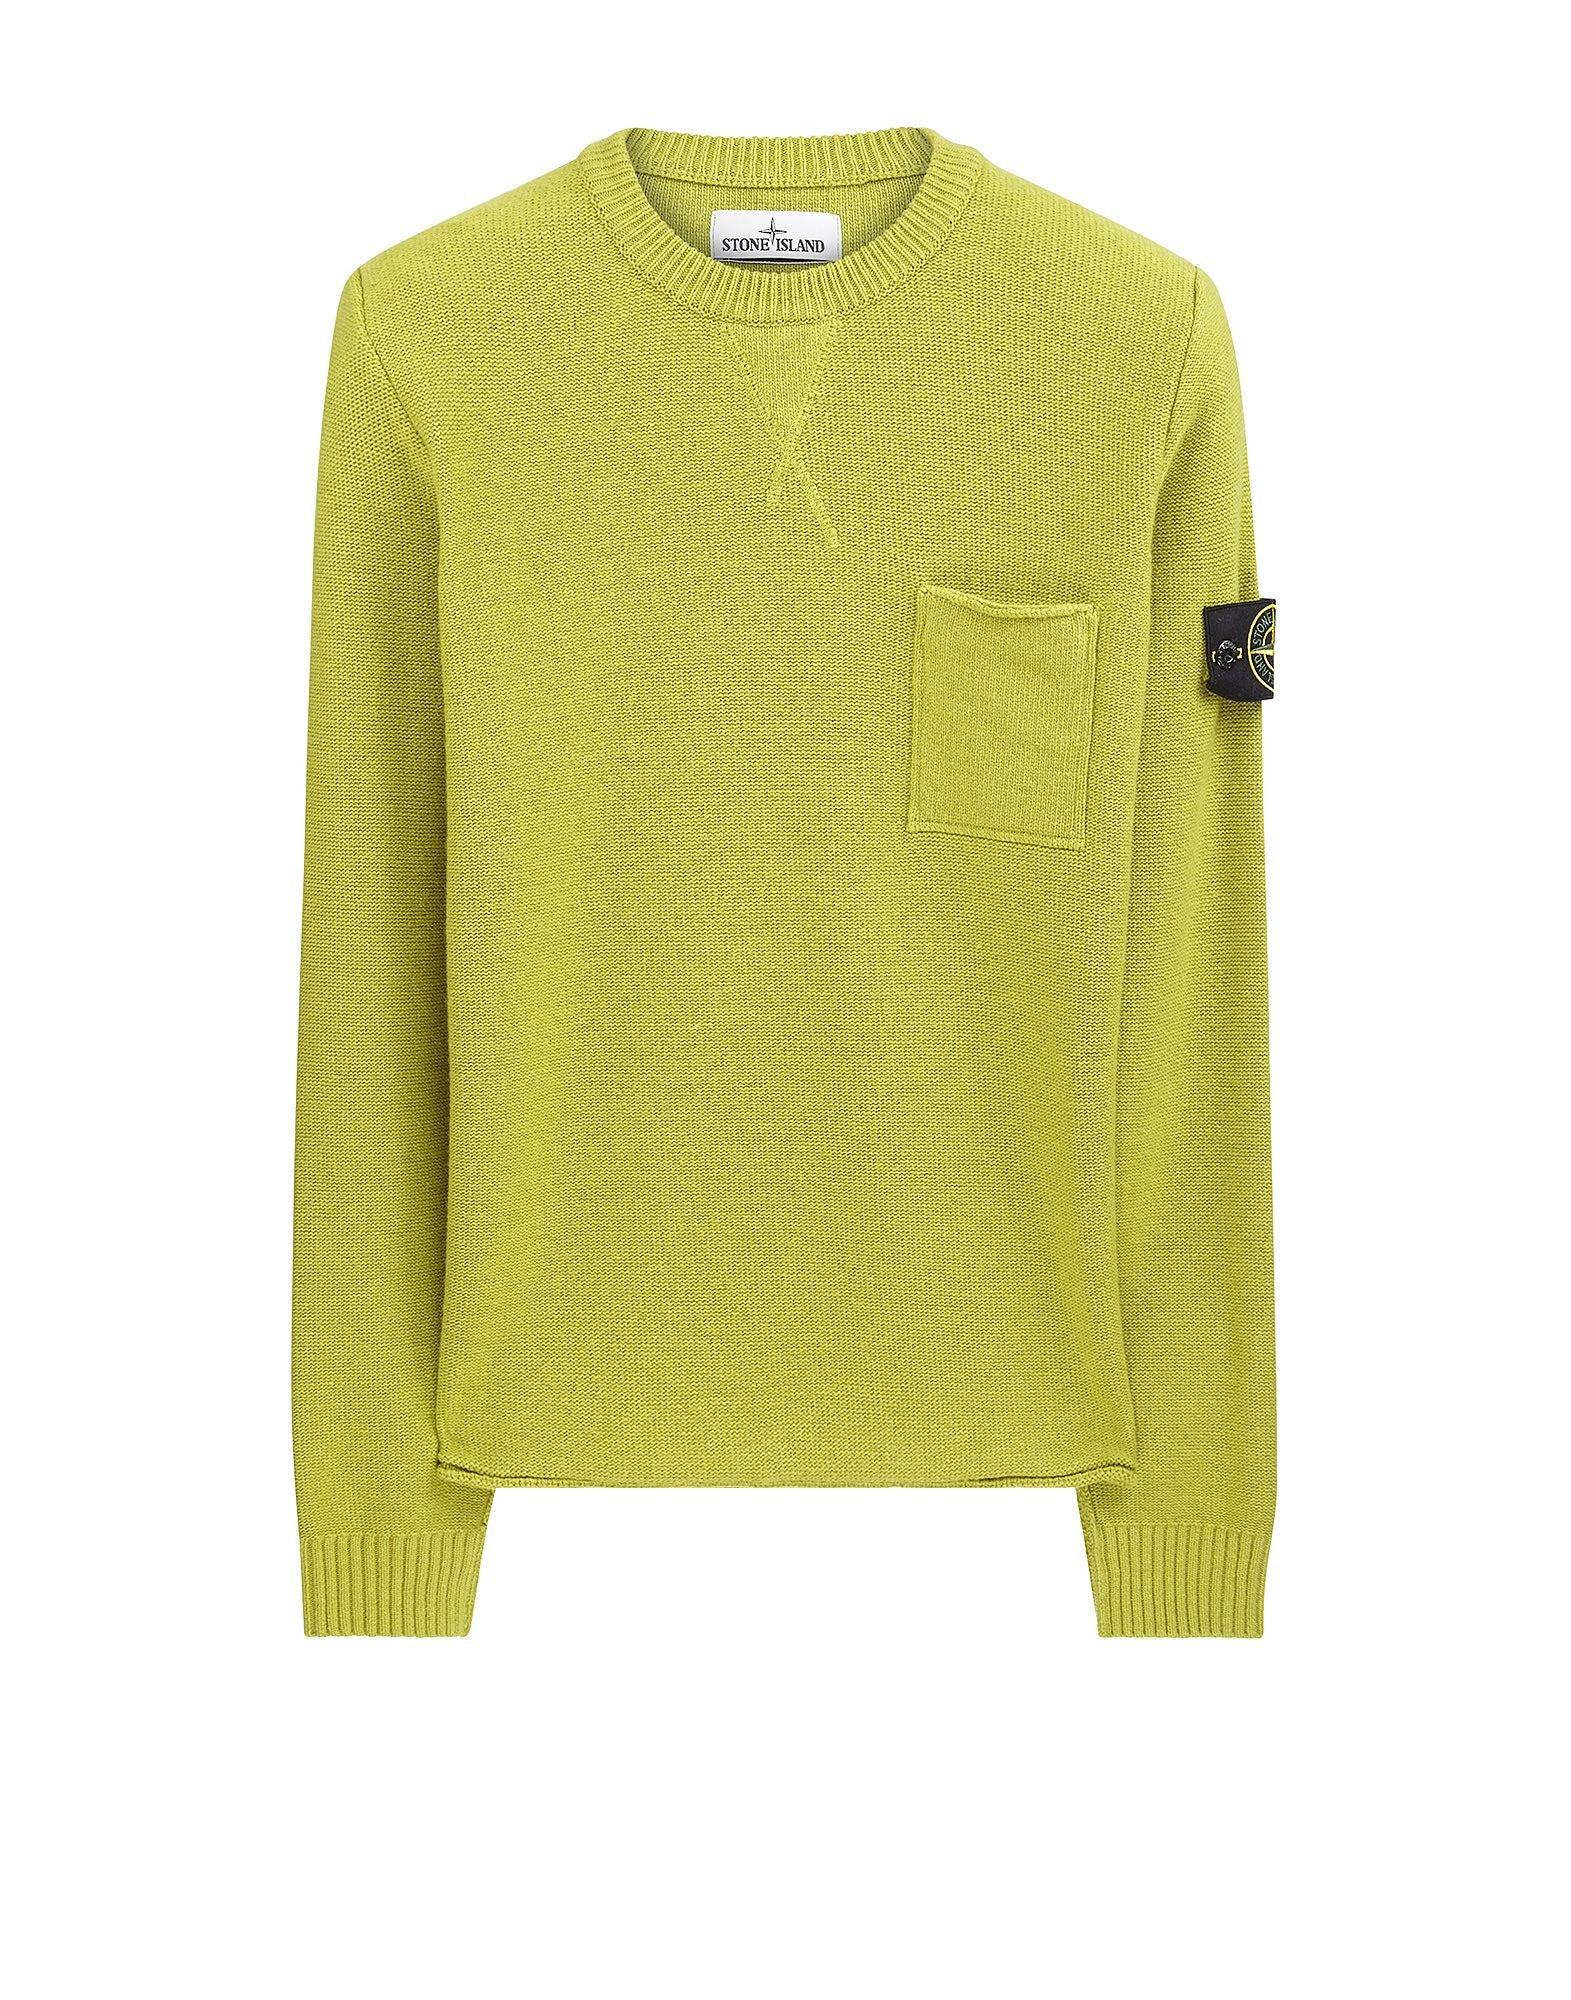 553D9 Crewneck Knit in Green